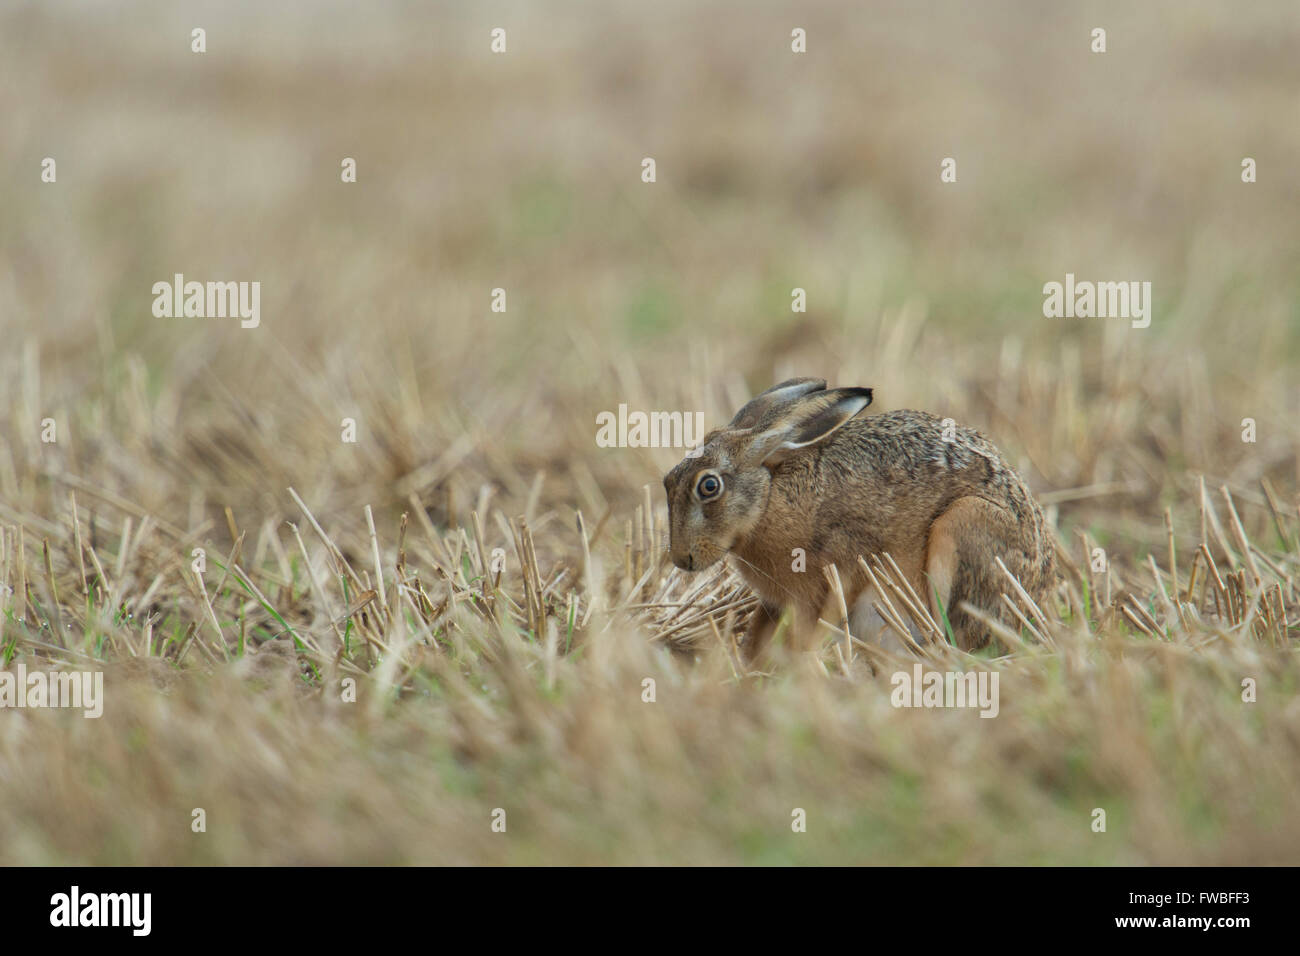 Brown Hare / European Hare / Feldhase ( Lepus europaeus ) sitting in a harvested field, looks a little bit anxious. - Stock Image